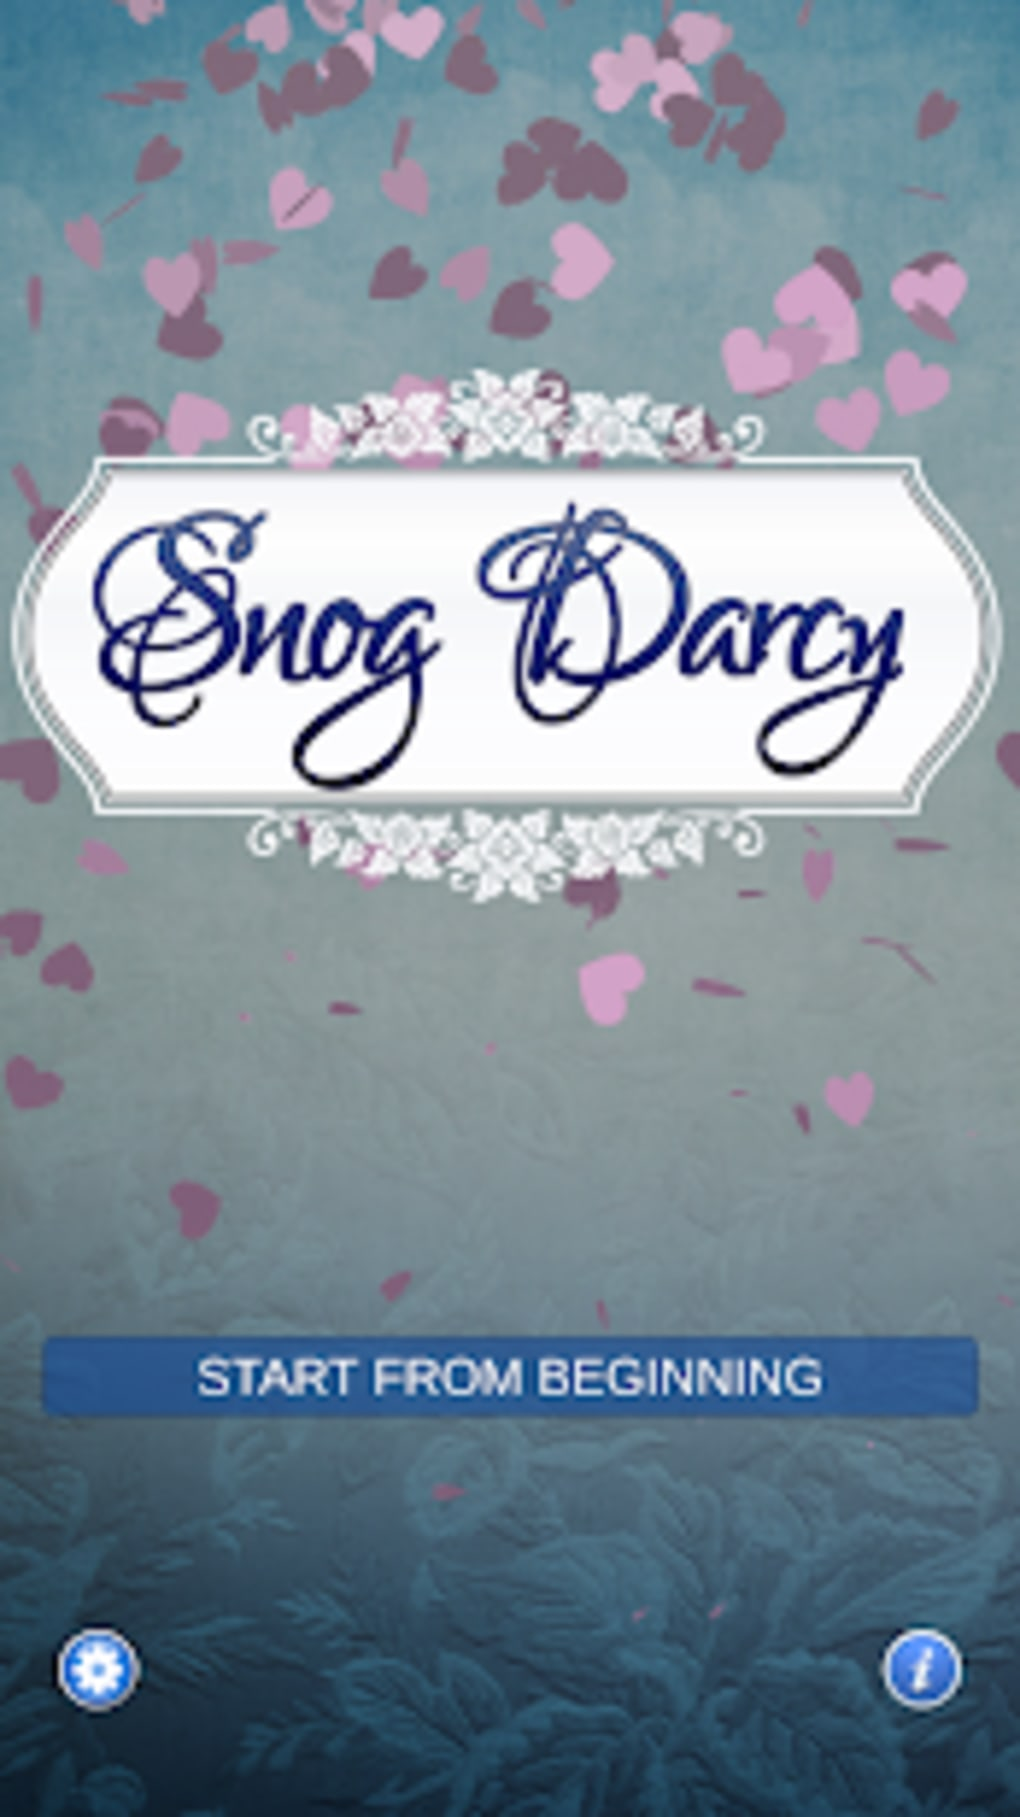 Snog Darcy for Android - Download